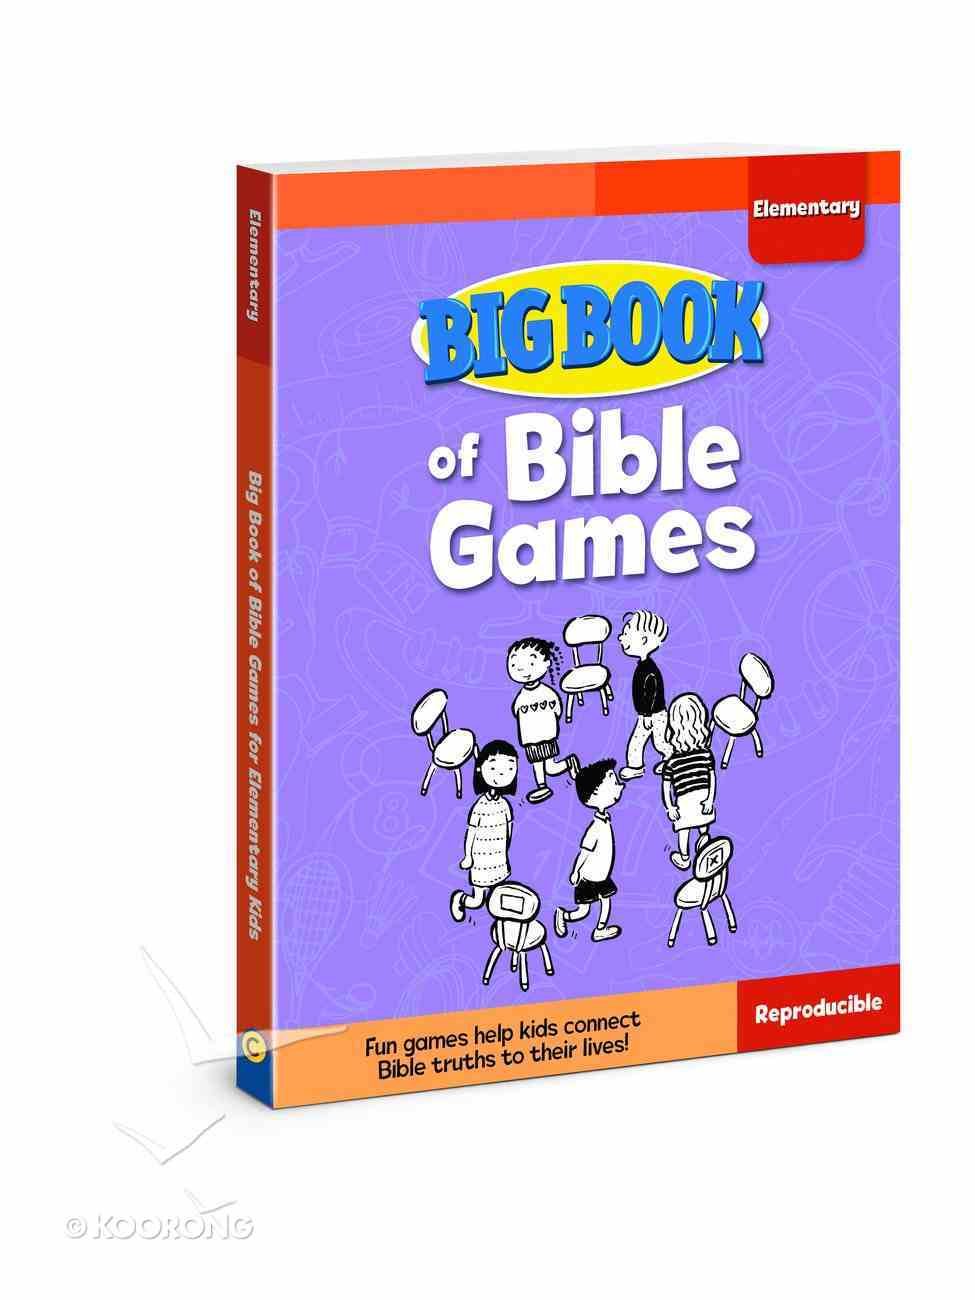 Big Book of Bible Games For Elementary Kids (Reproducible) Paperback